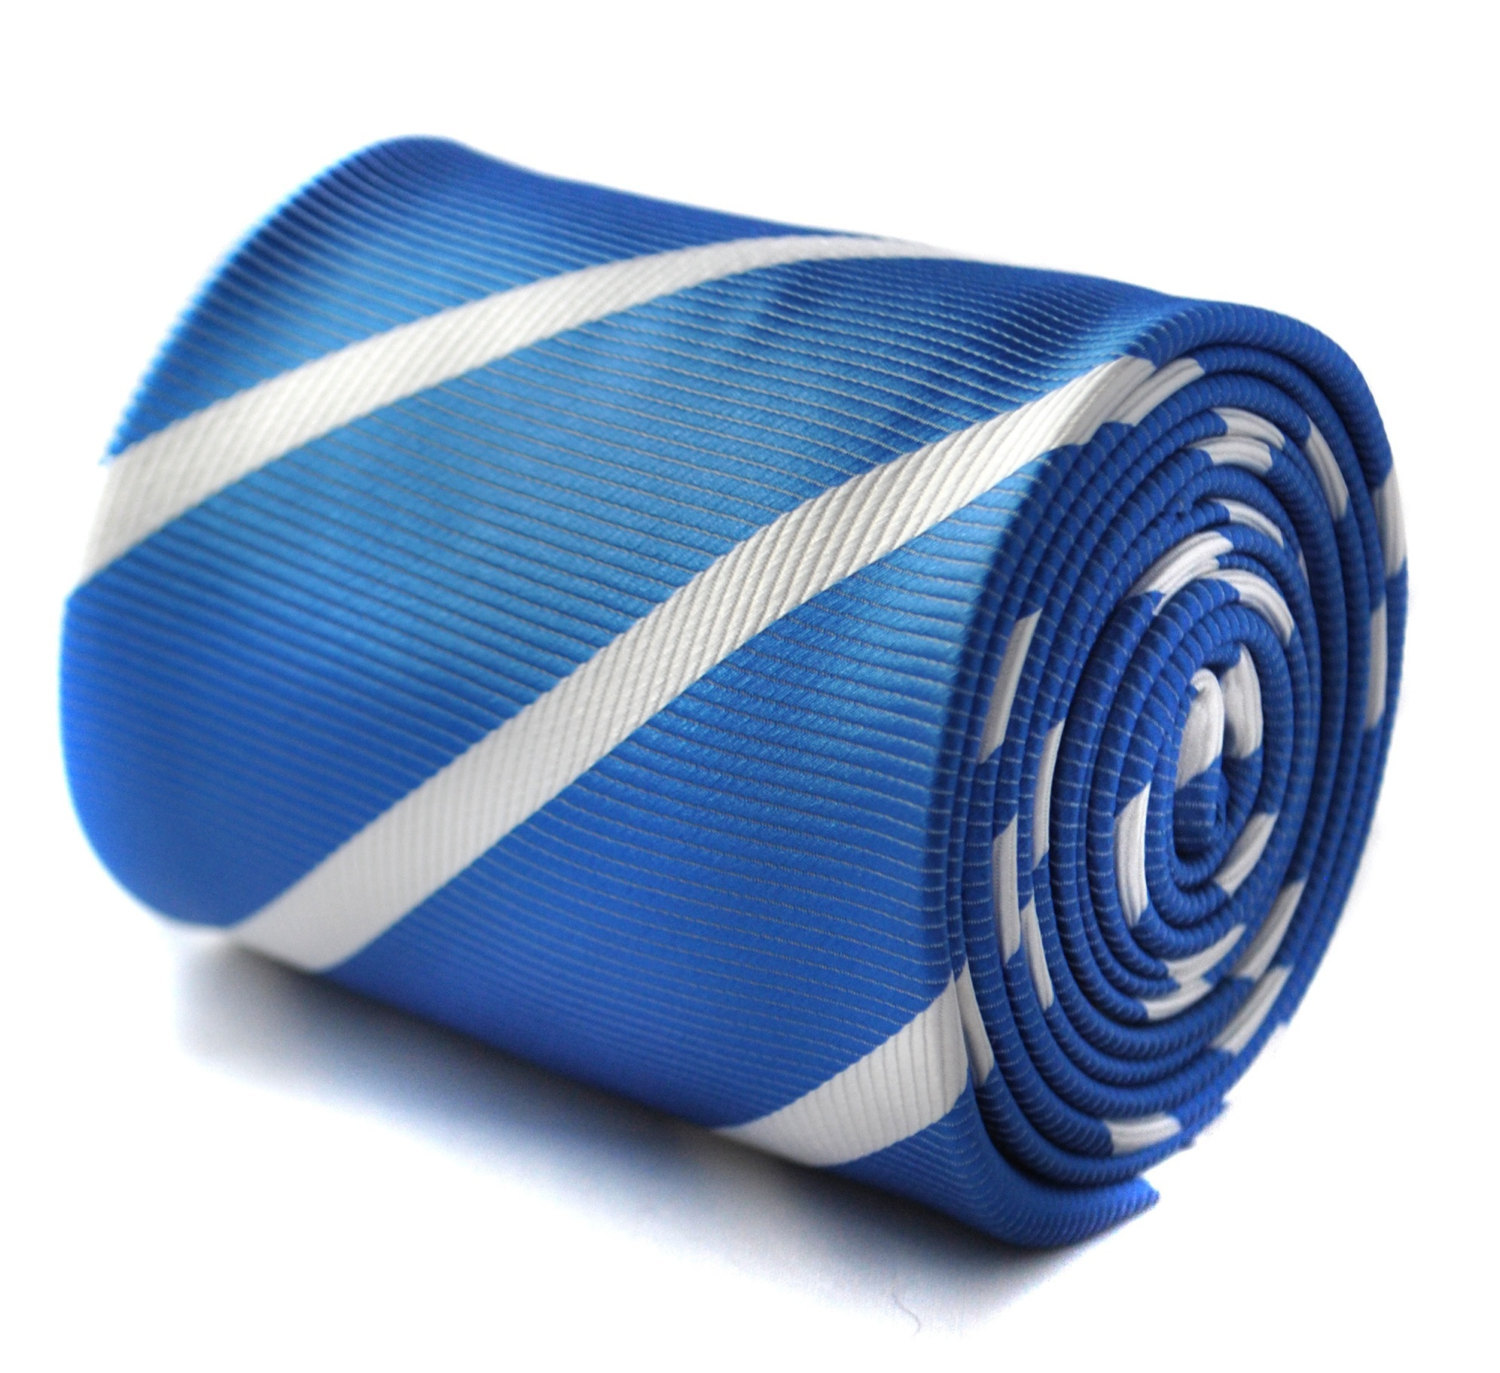 royal blue and white club striped tie with floral design to the rear by Frederic